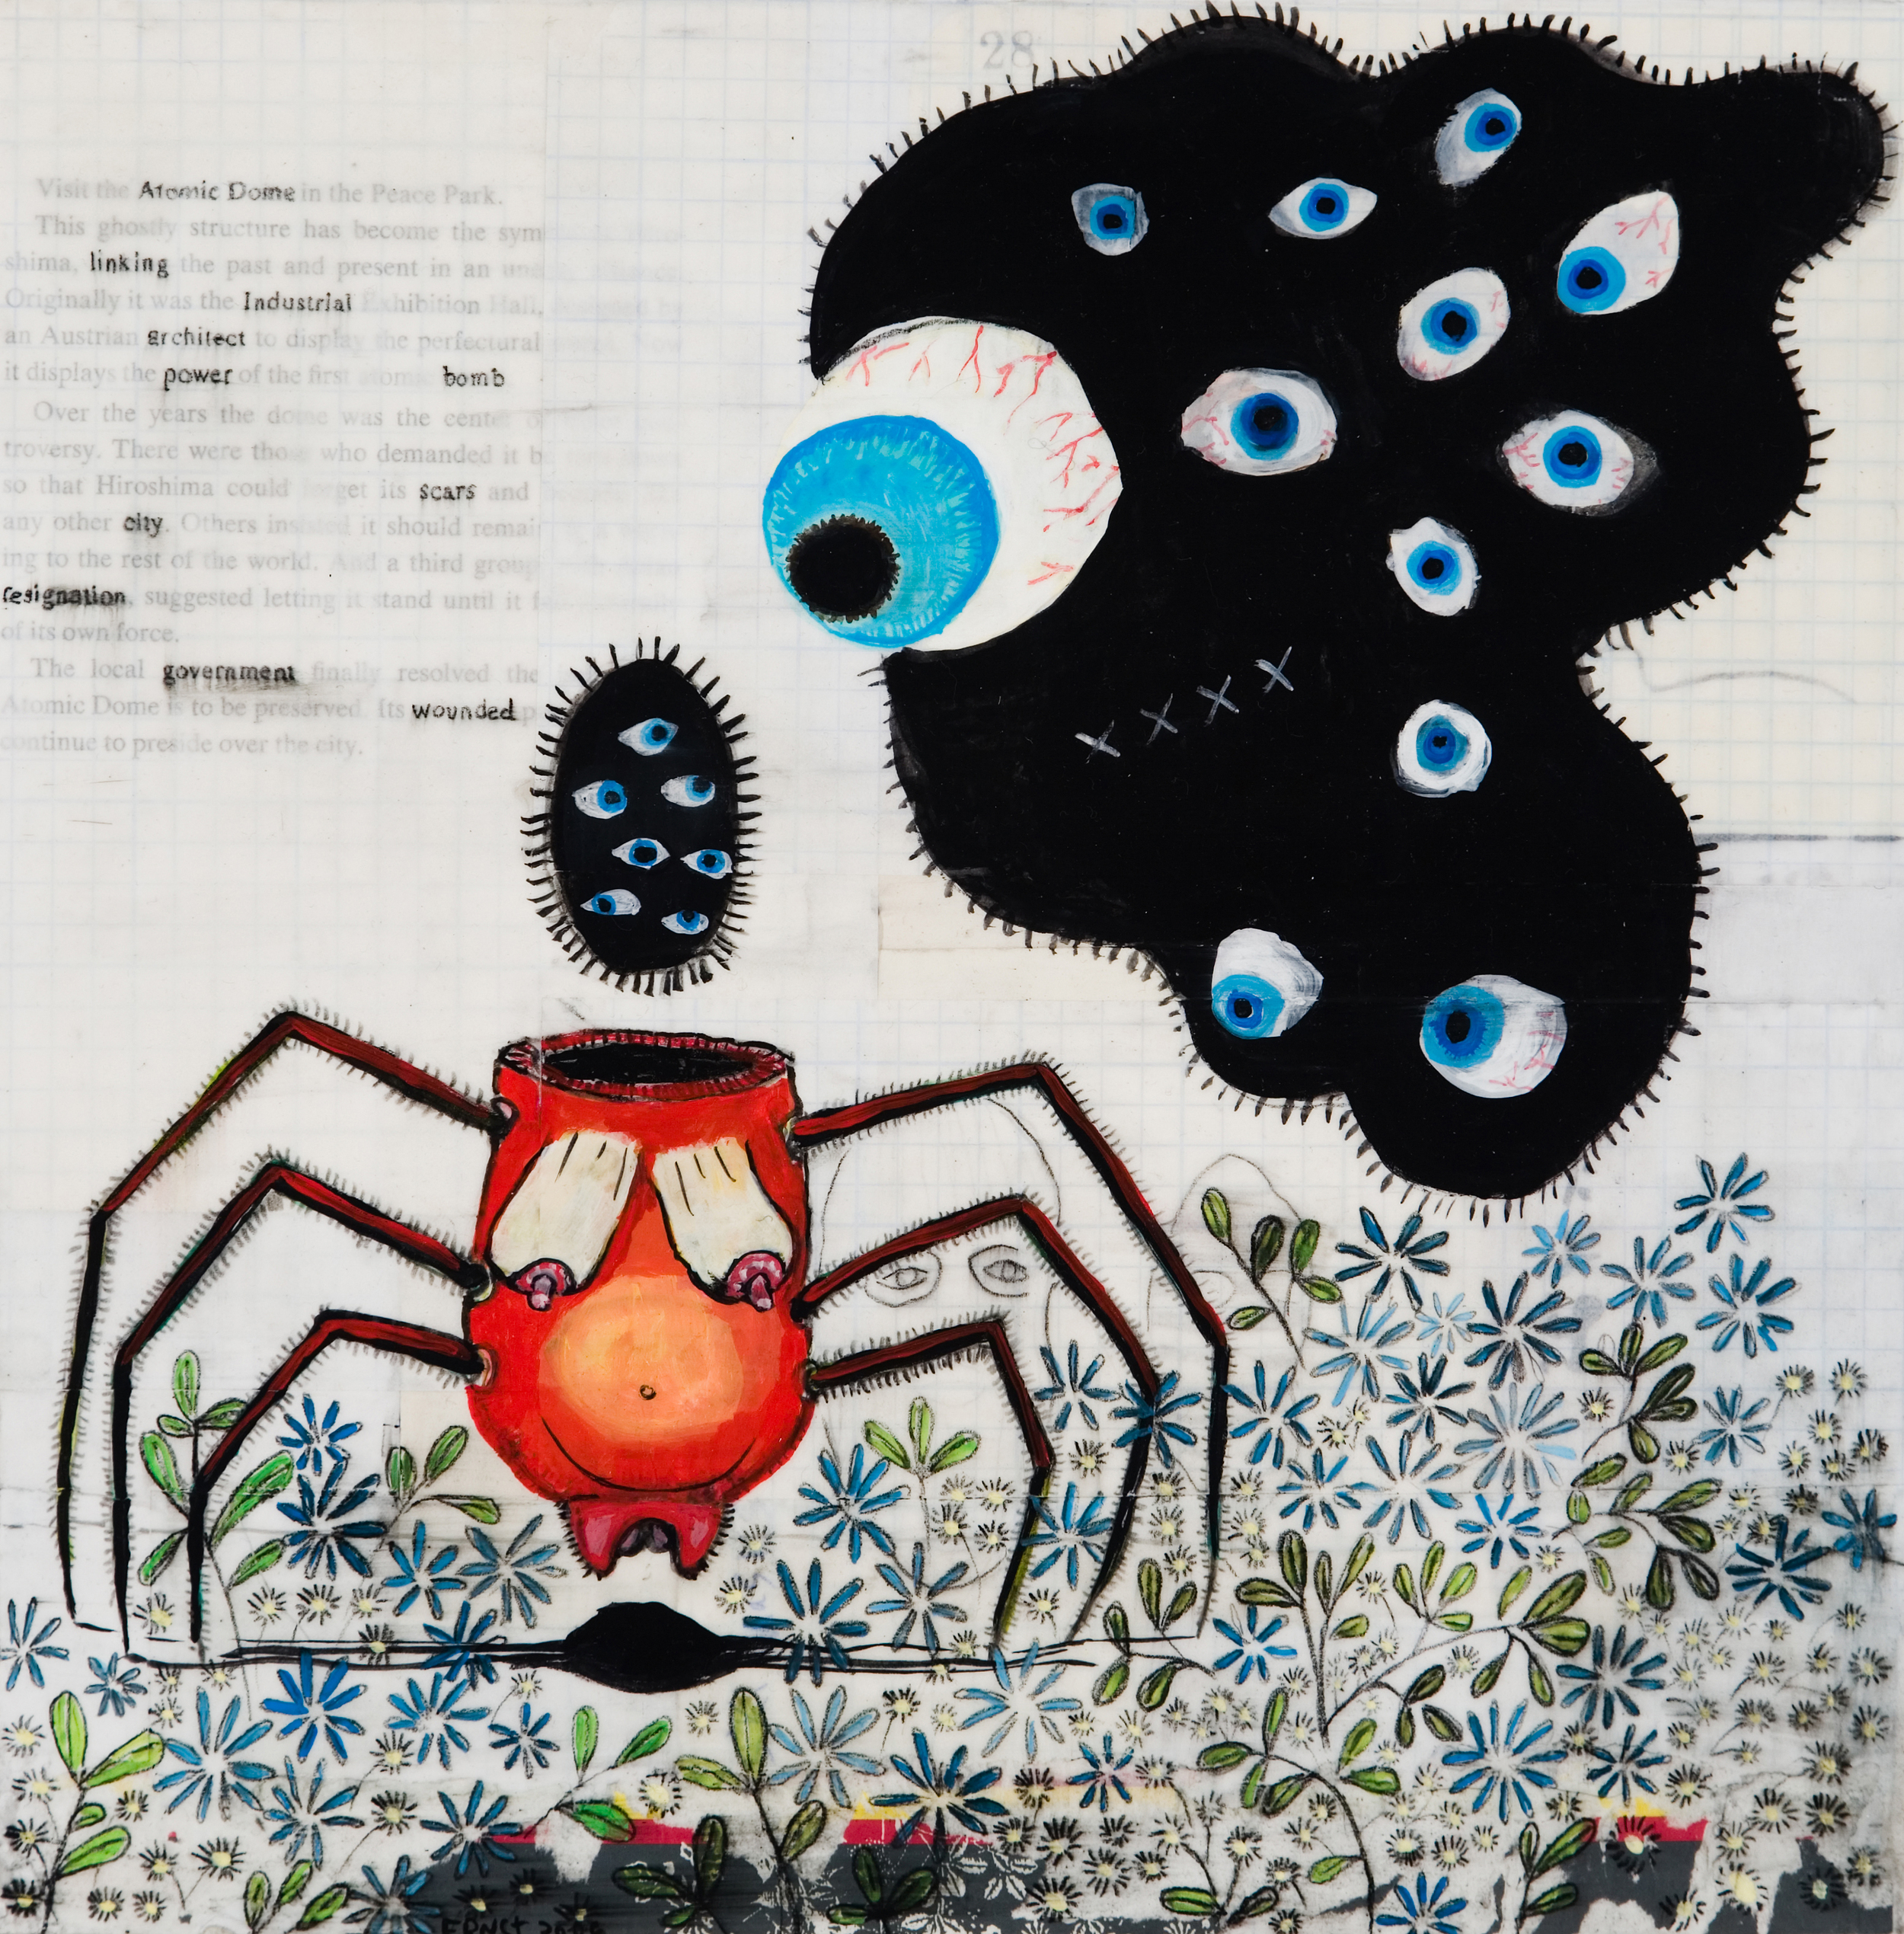 Matt Ernst   Spider,  2007  Mixed media on canvas  12 x 12